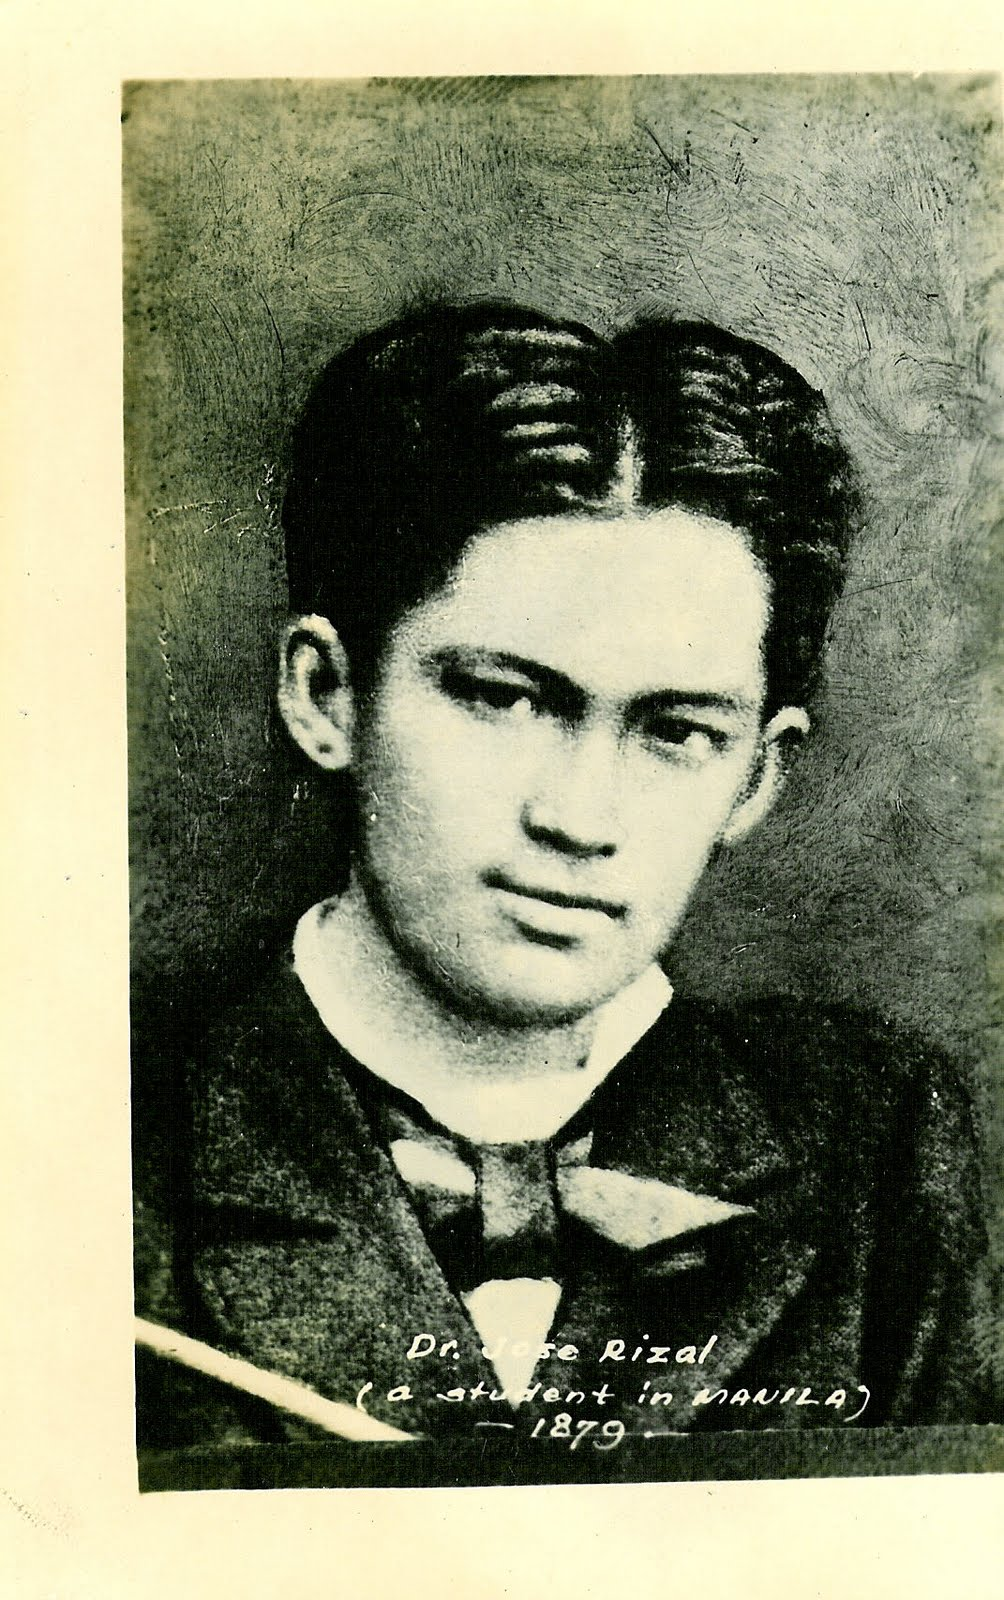 rizal chapter 7 Description rizal in brunn 19 may 1887 rizal bade goodbye to prof dr willkomn, state adviser in brunn the lovable daughter of the professor reproached rizal for.